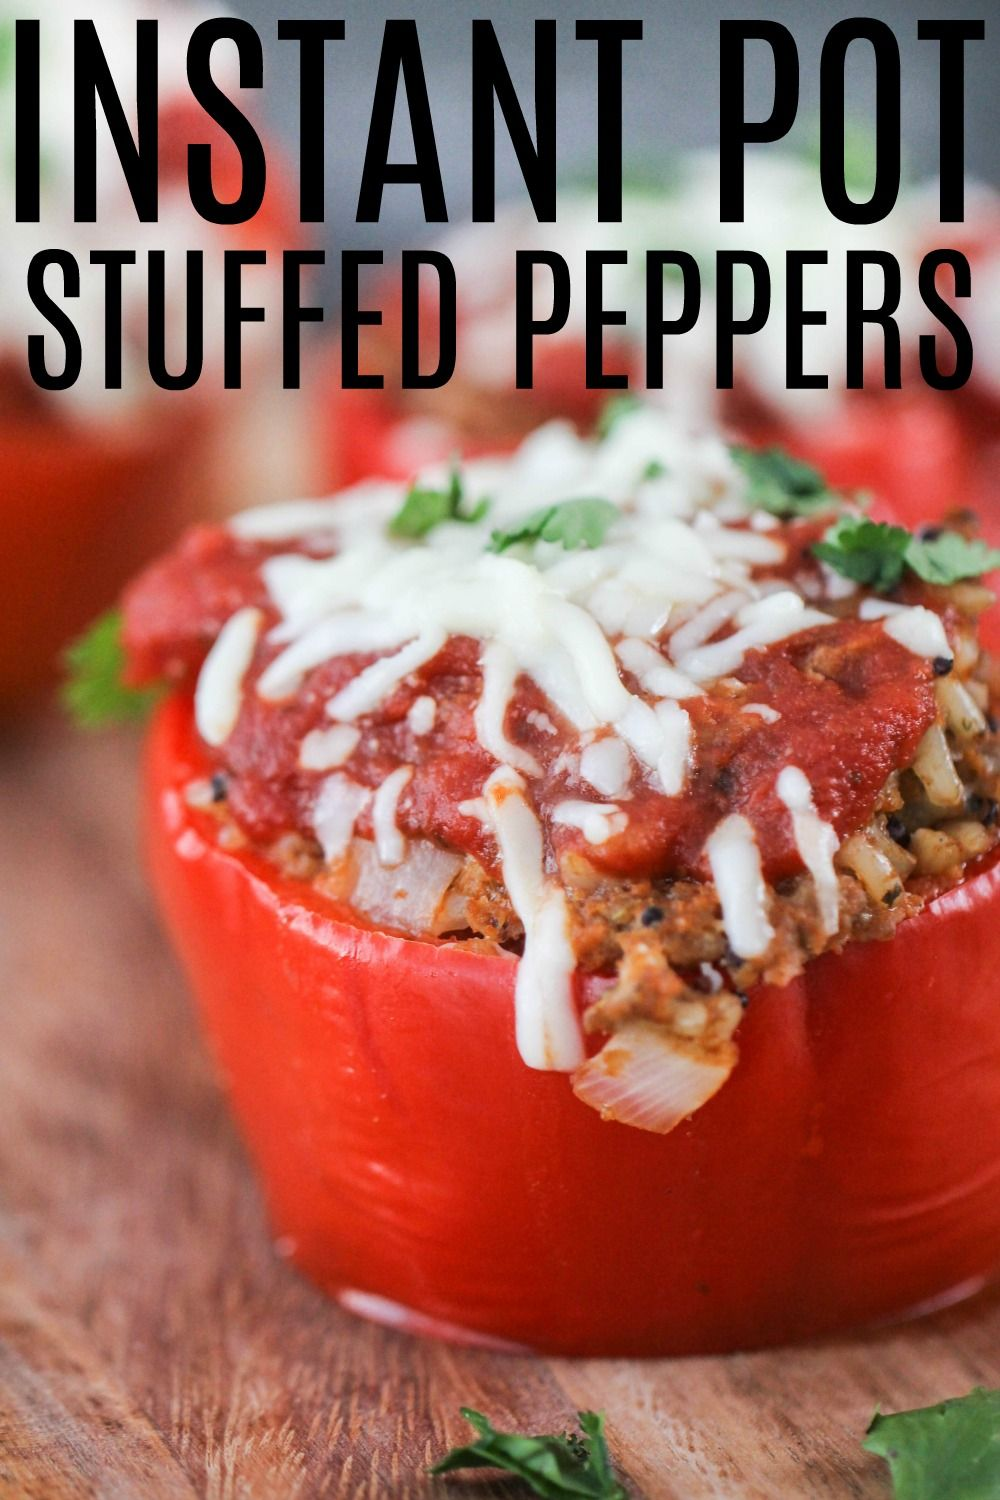 Easy Instant Pot Stuffed Peppers Healthy Recipe Recipe Stuffed Peppers Healthy Recipes Recipes